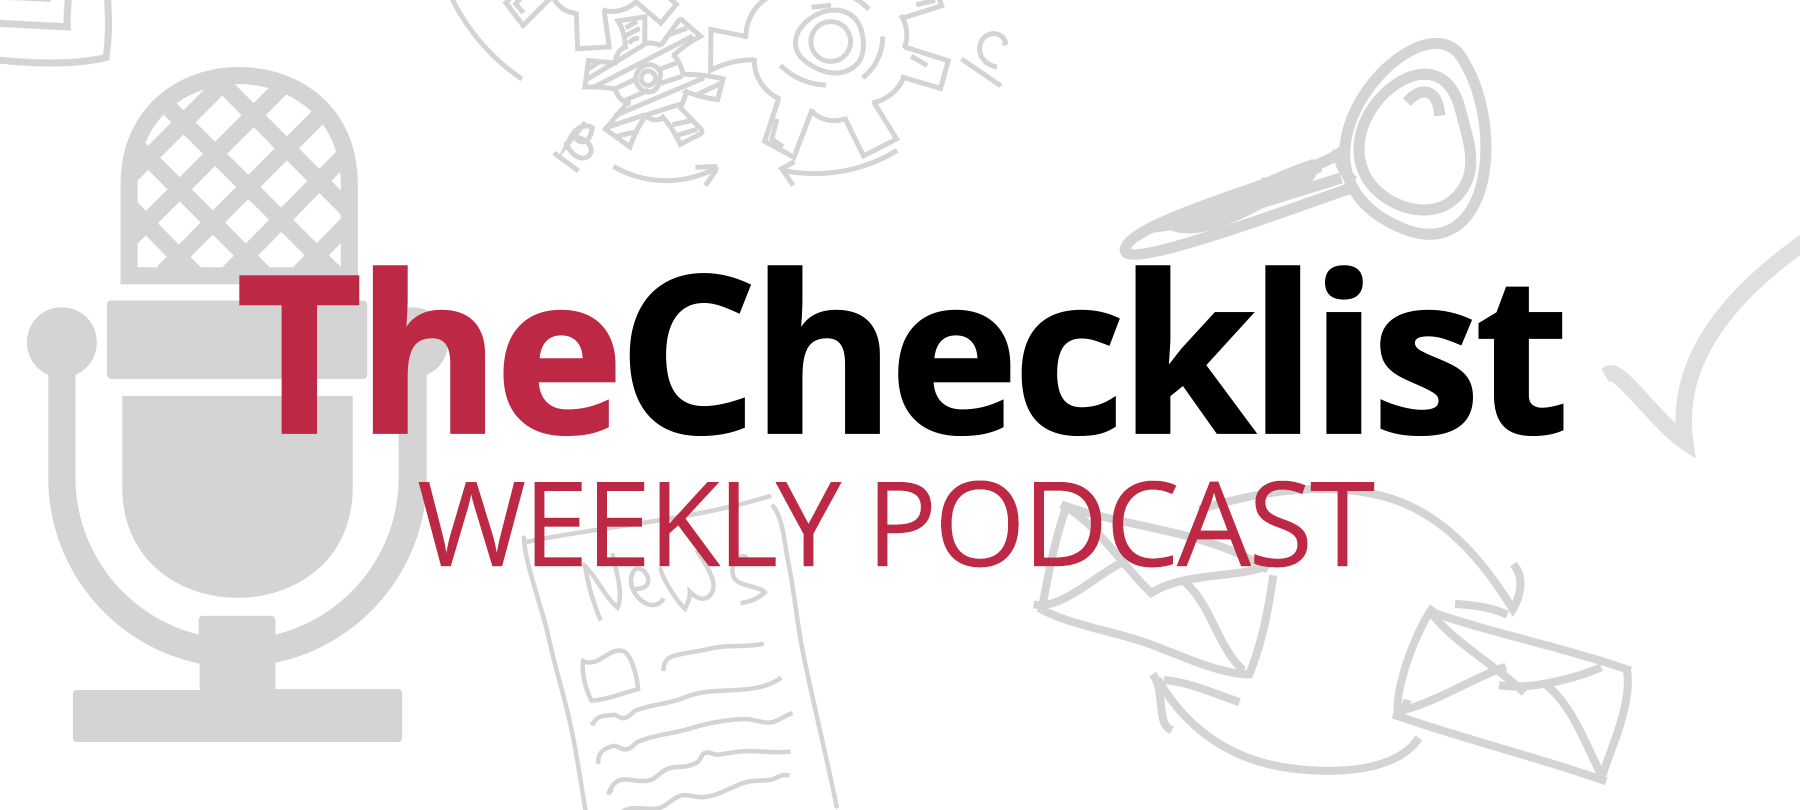 Episode: Checklist 132: Soup, Salad, and a Security Breach